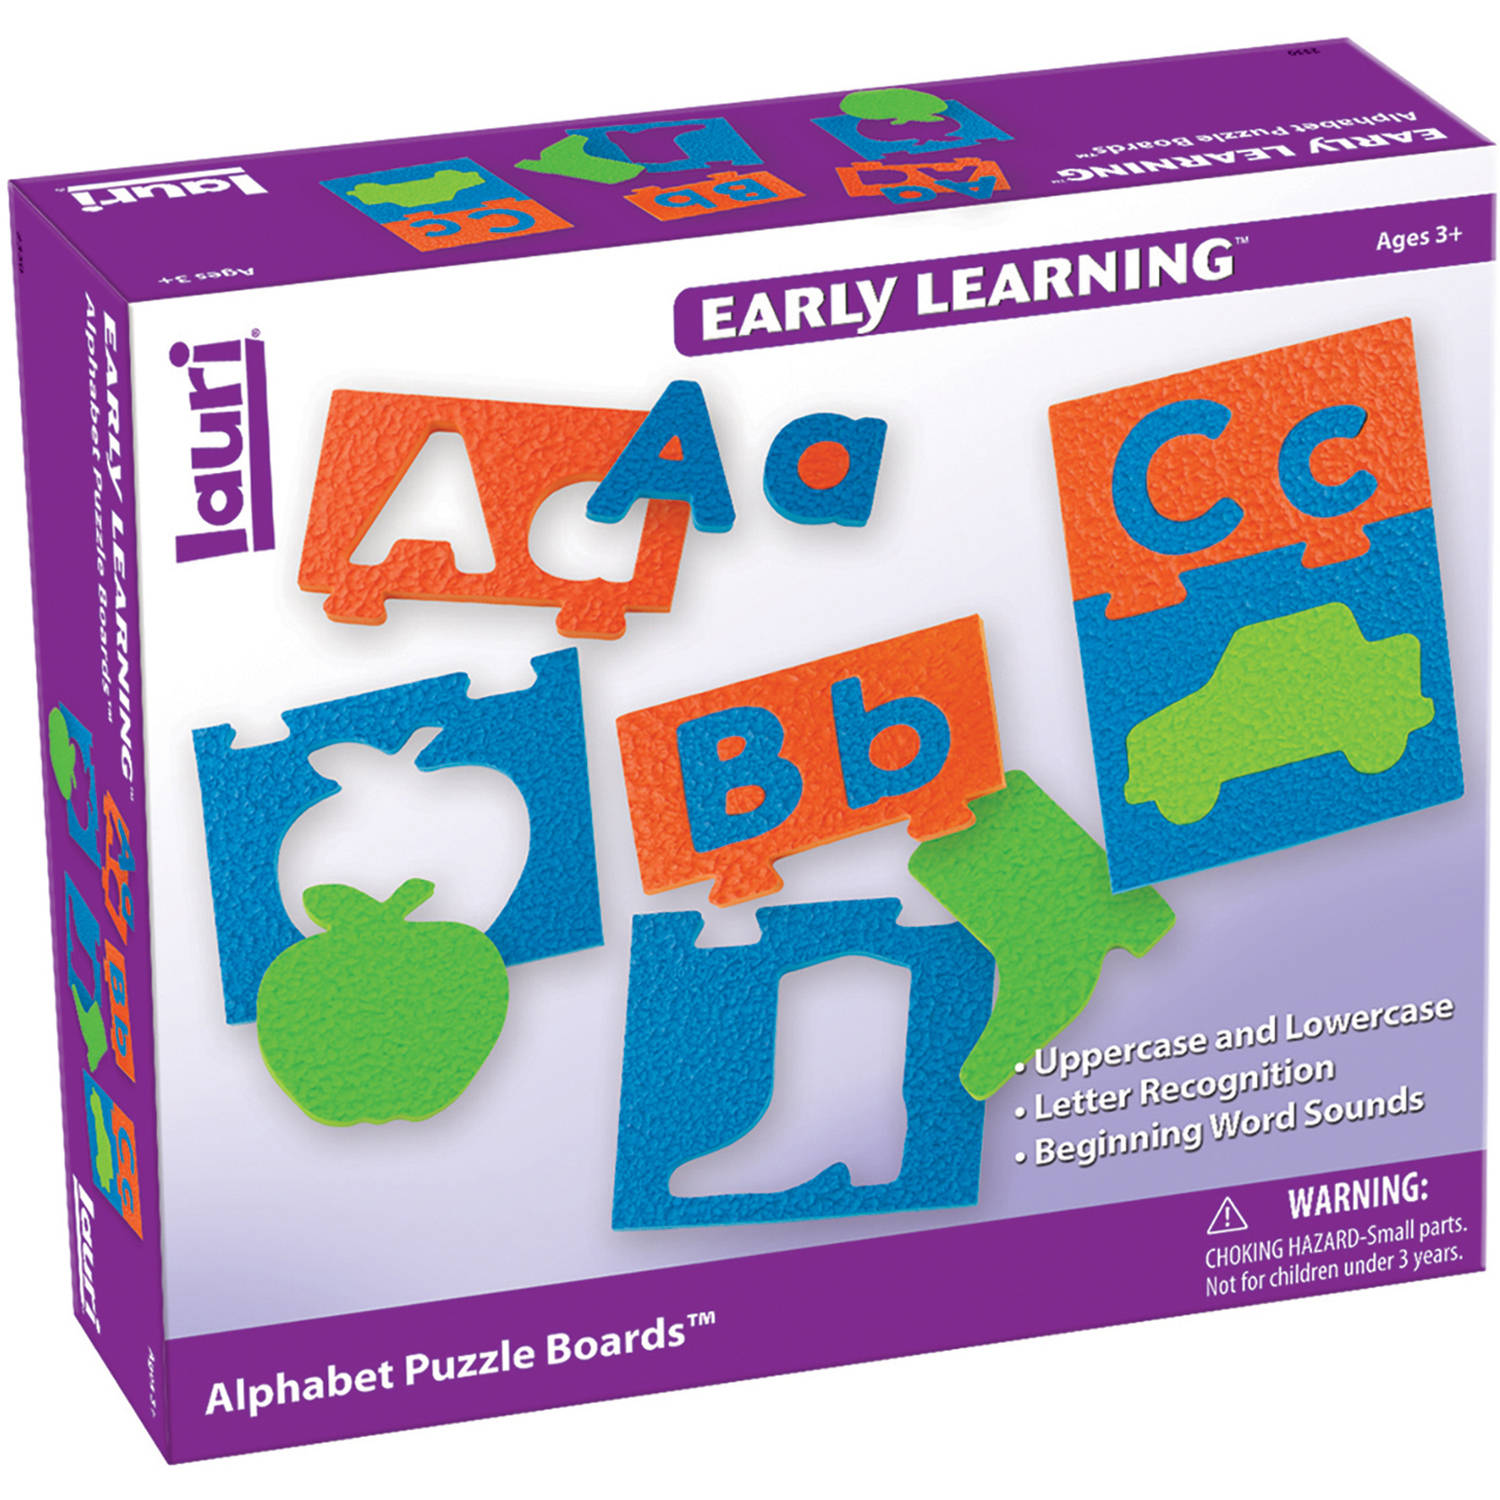 LAURI Alphabet Puzzle Boards